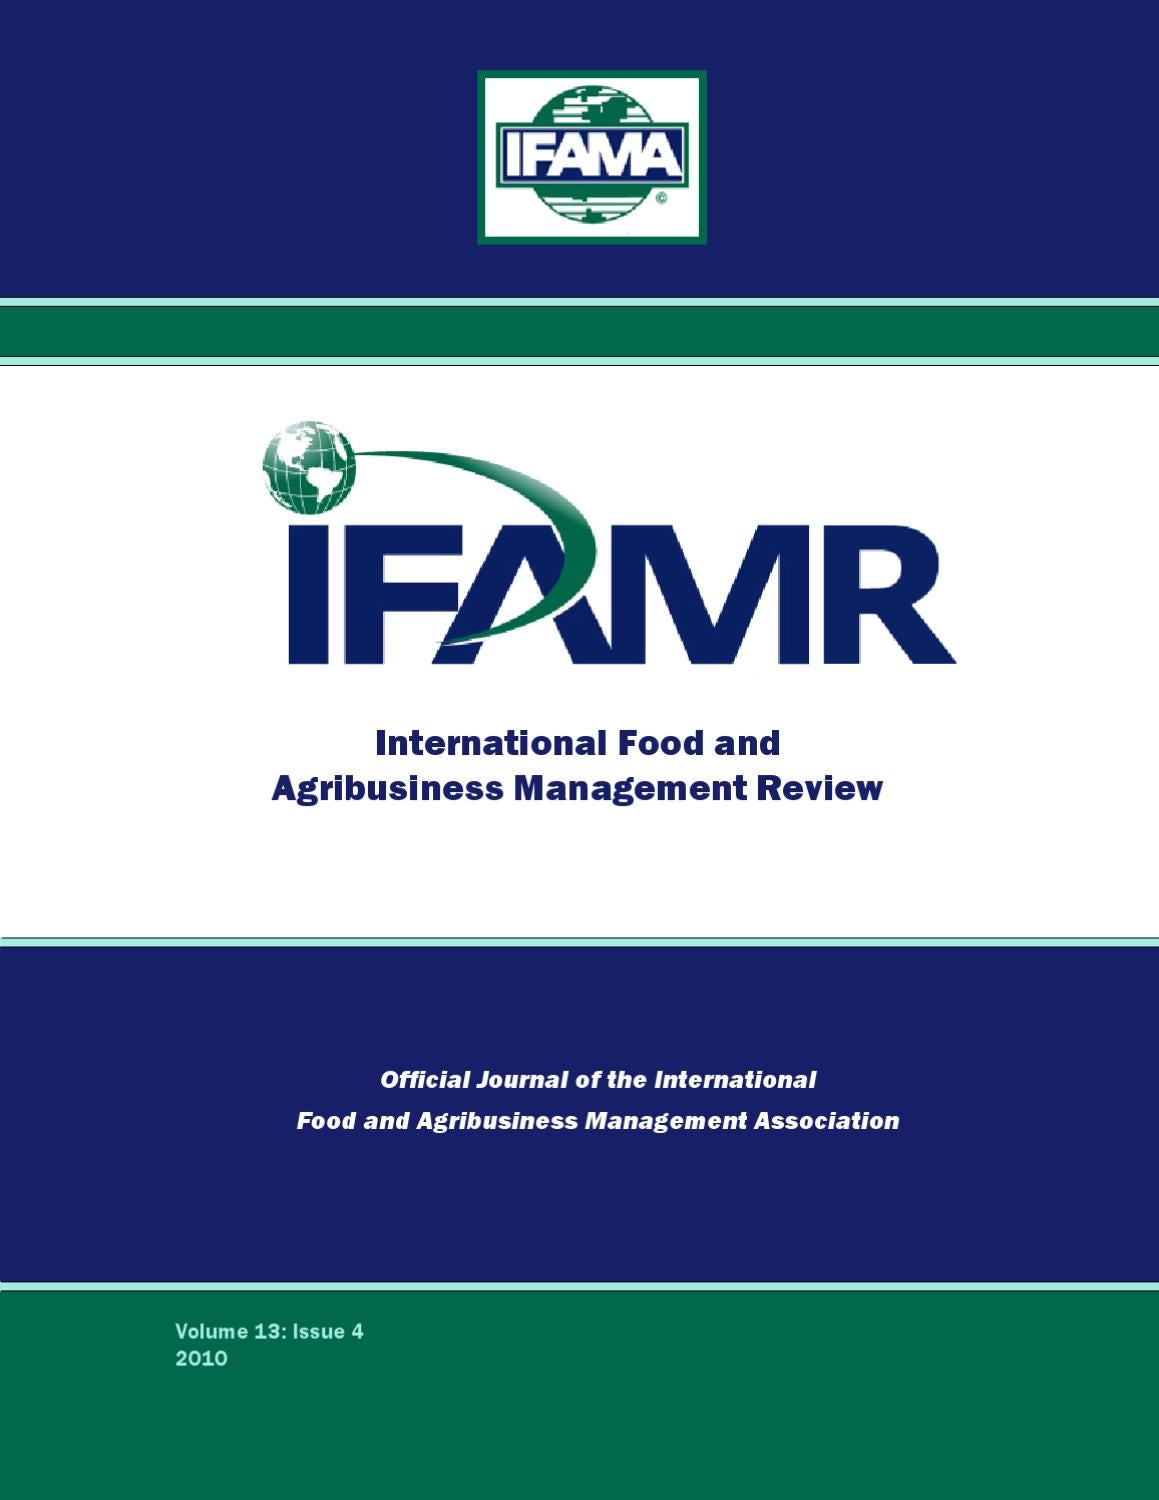 Volume 13 Issue 4 by IFAMA - issuu